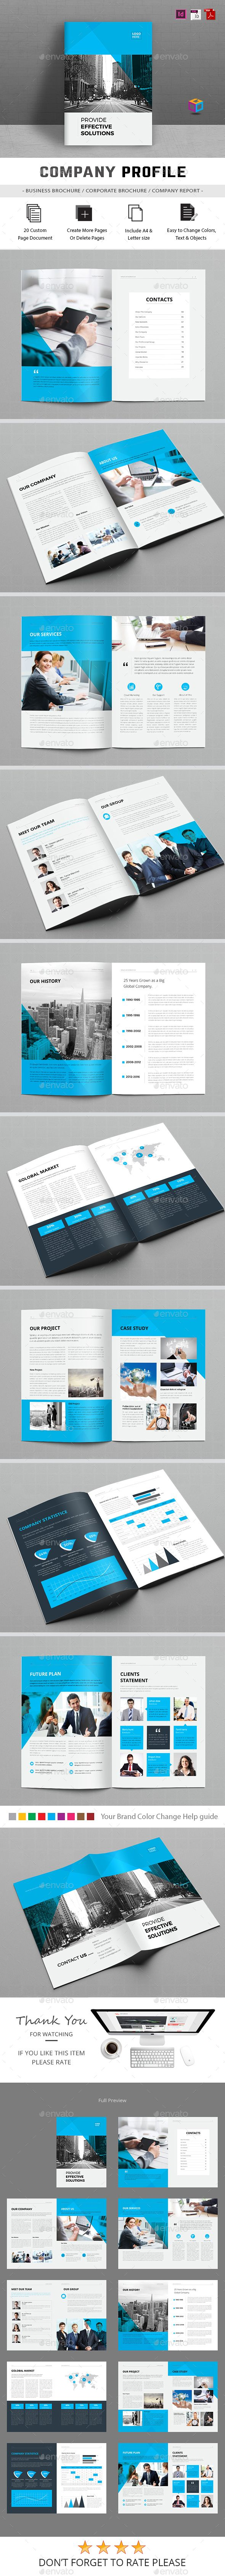 Company Profile  — InDesign Template #a4 #indesign • Download ➝ https://graphicriver.net/item/company-profile/18358452?ref=pxcr